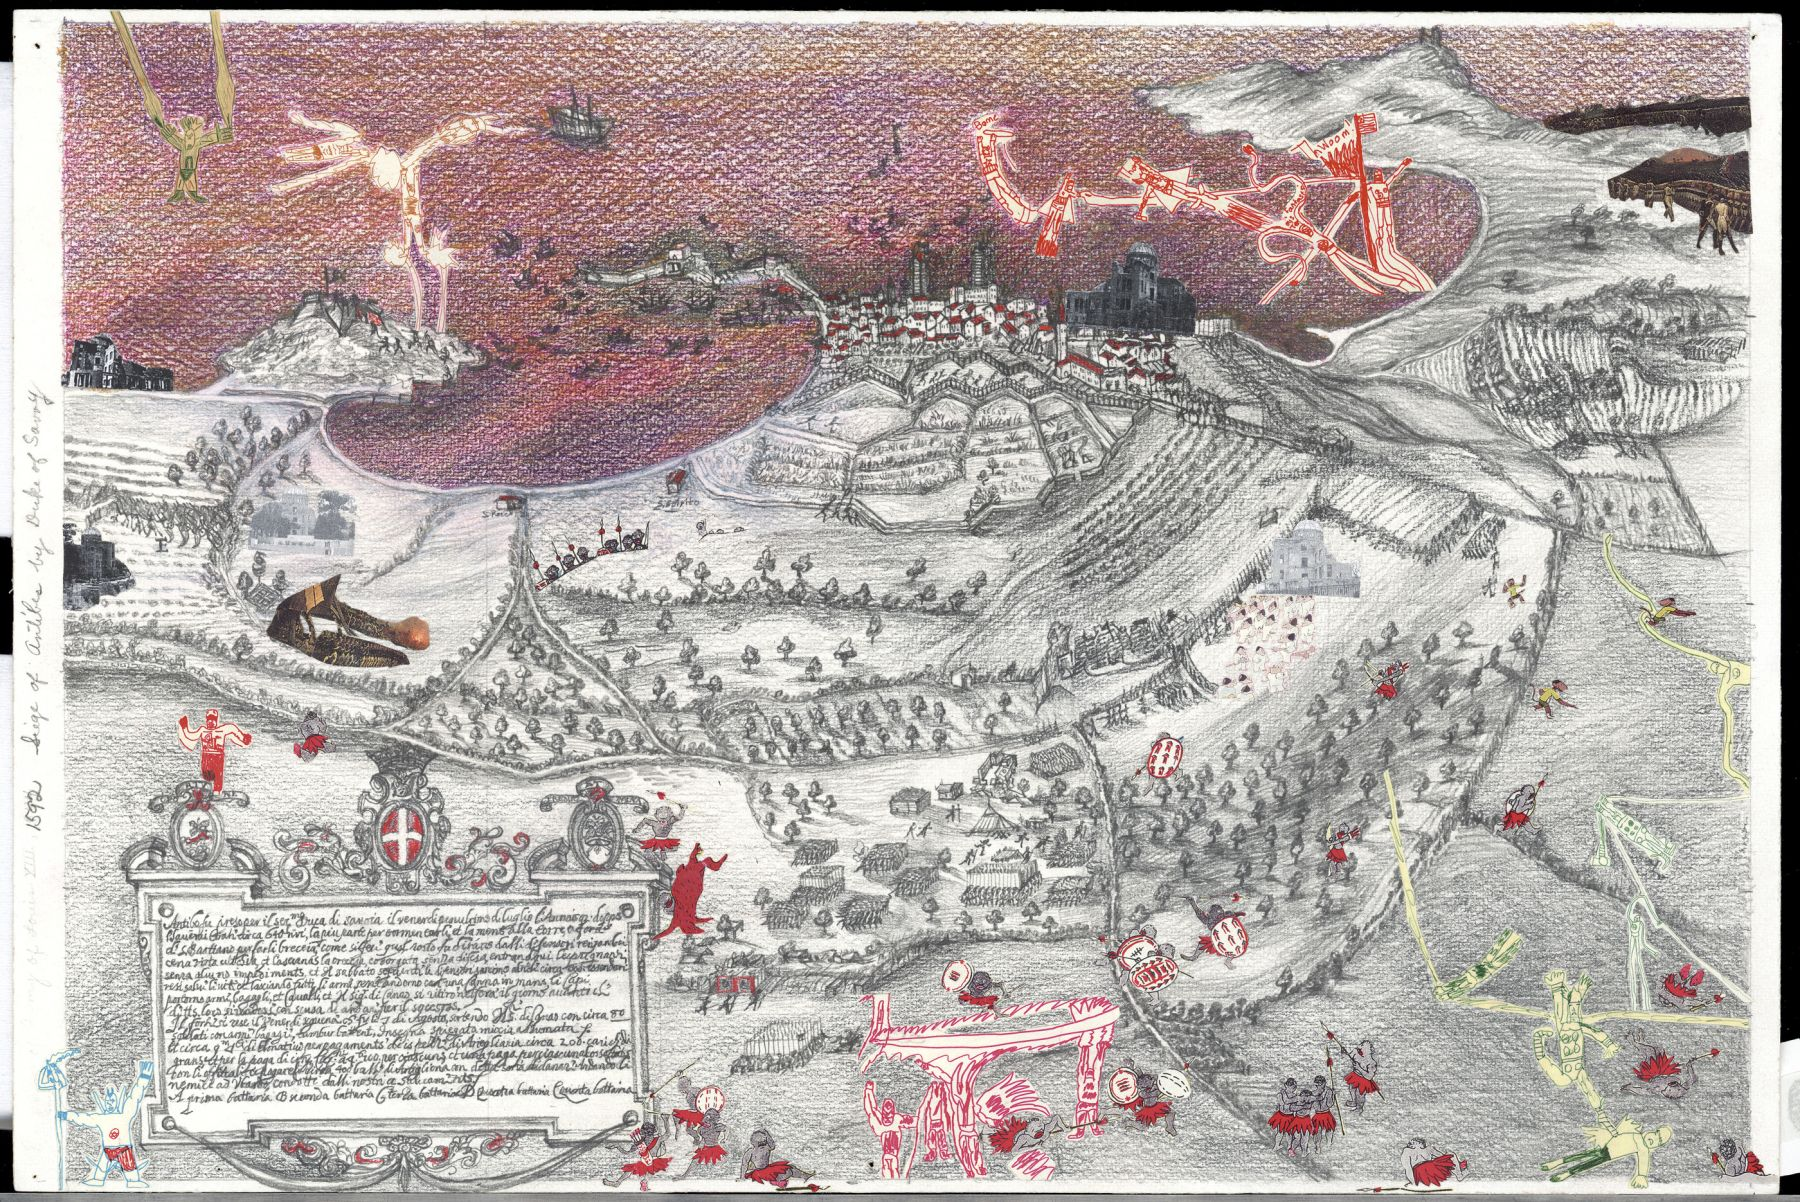 Boys' Art #24: Siege of Antibes, 1592, 2001-02, Mixed media on paper